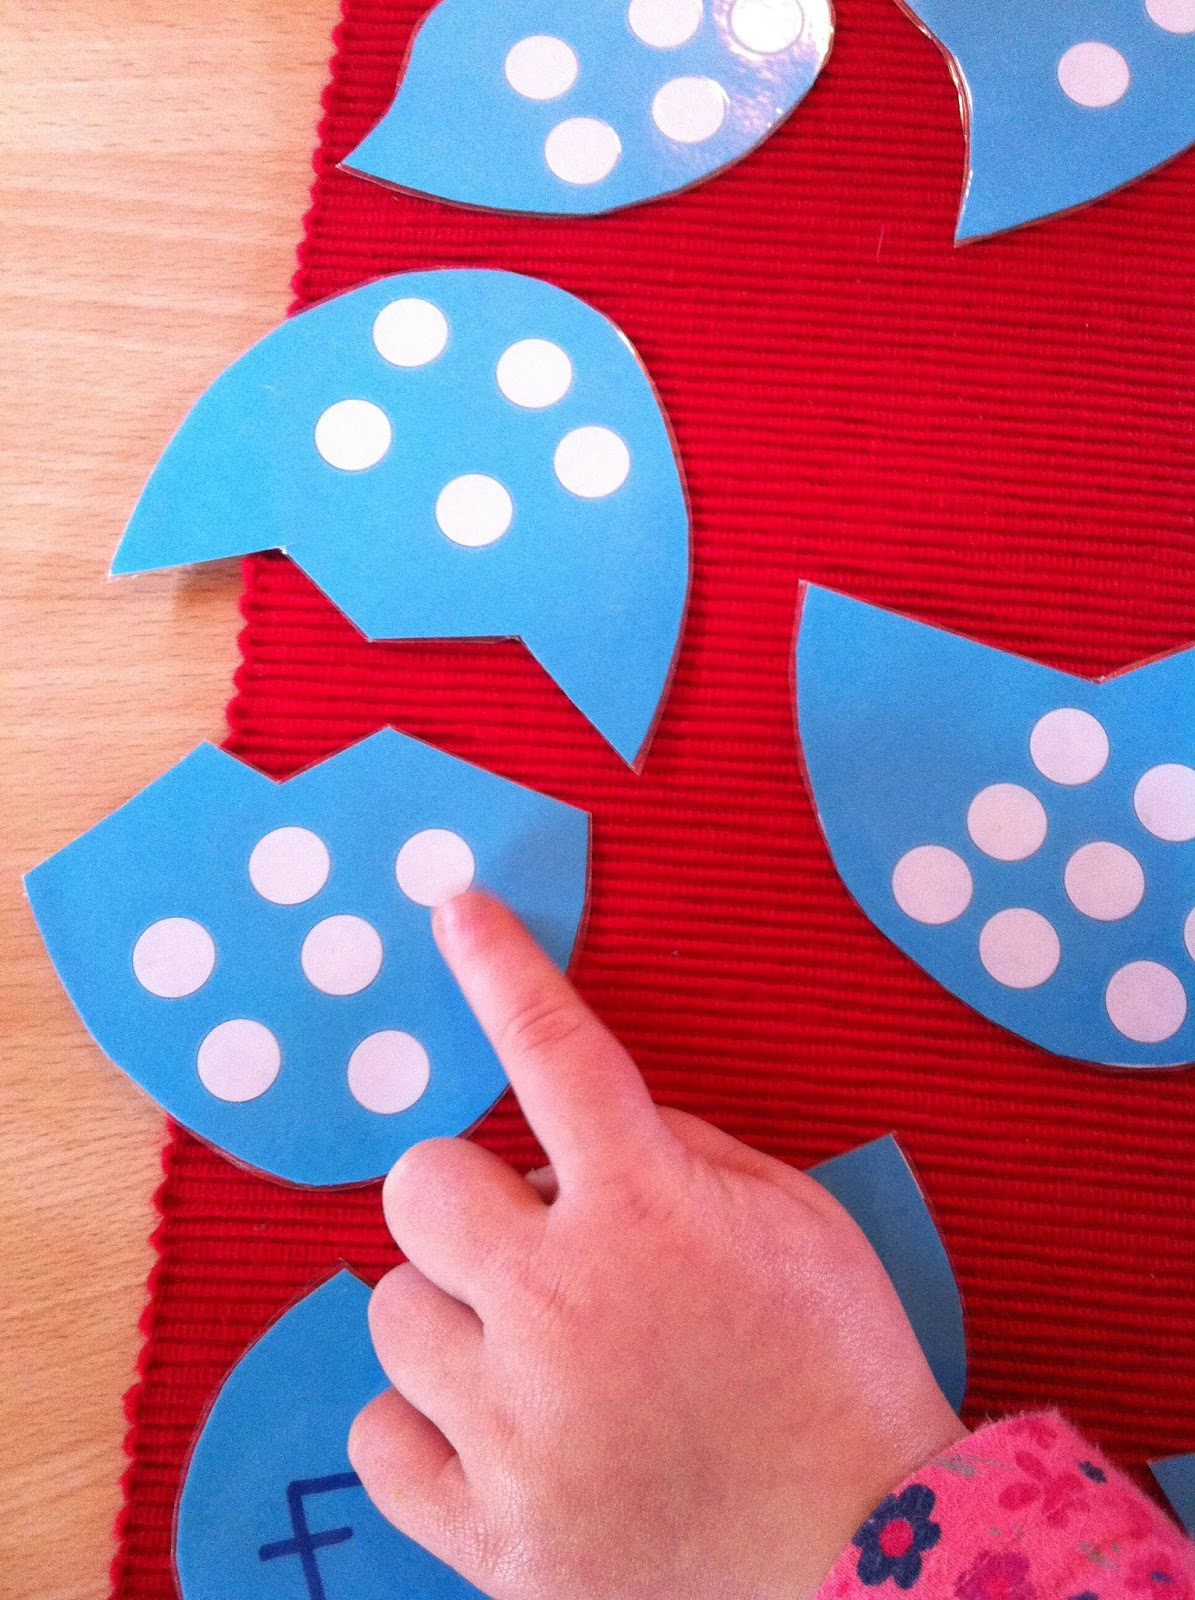 The Guilletos Playful Learning More Easter Activities